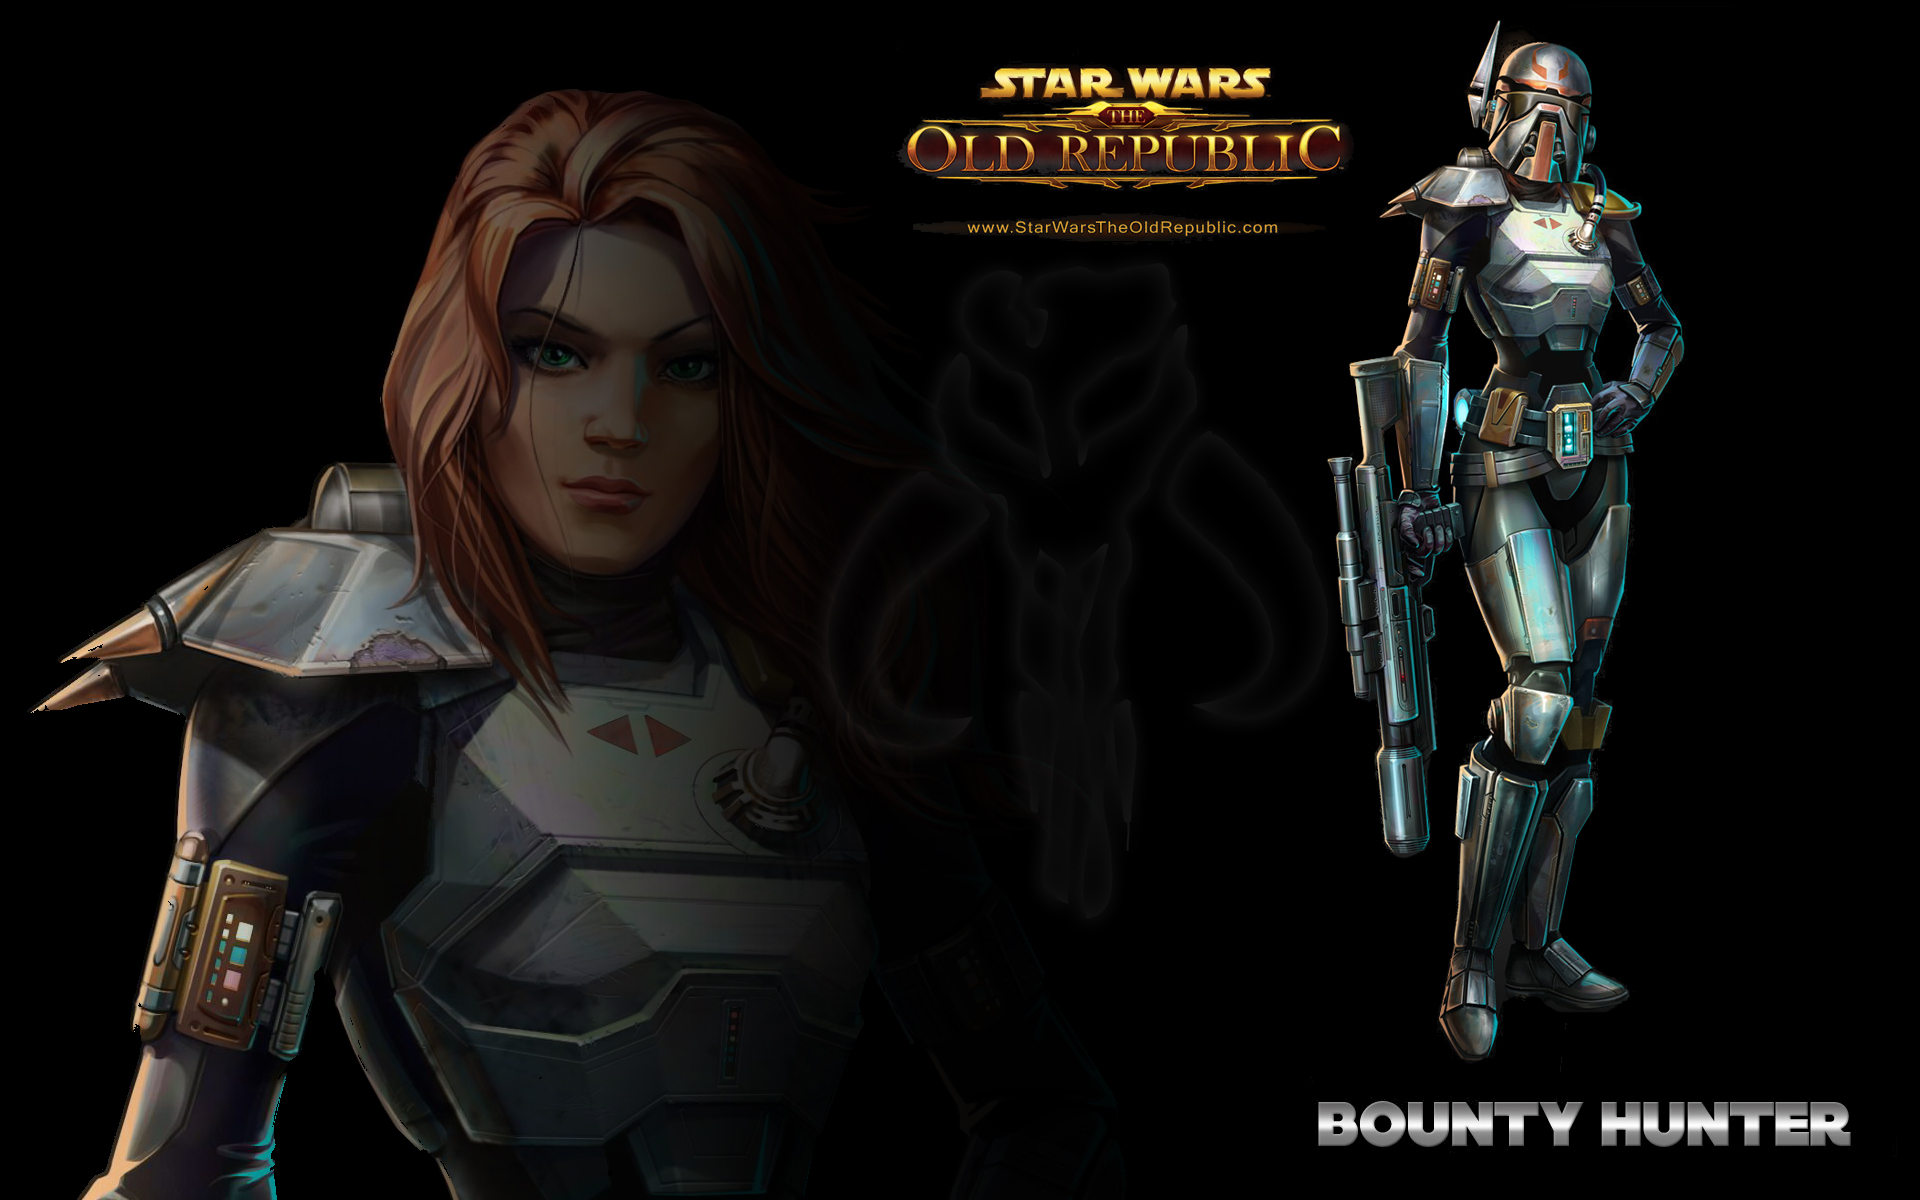 49 Swtor Bounty Hunter Wallpaper On Wallpapersafari